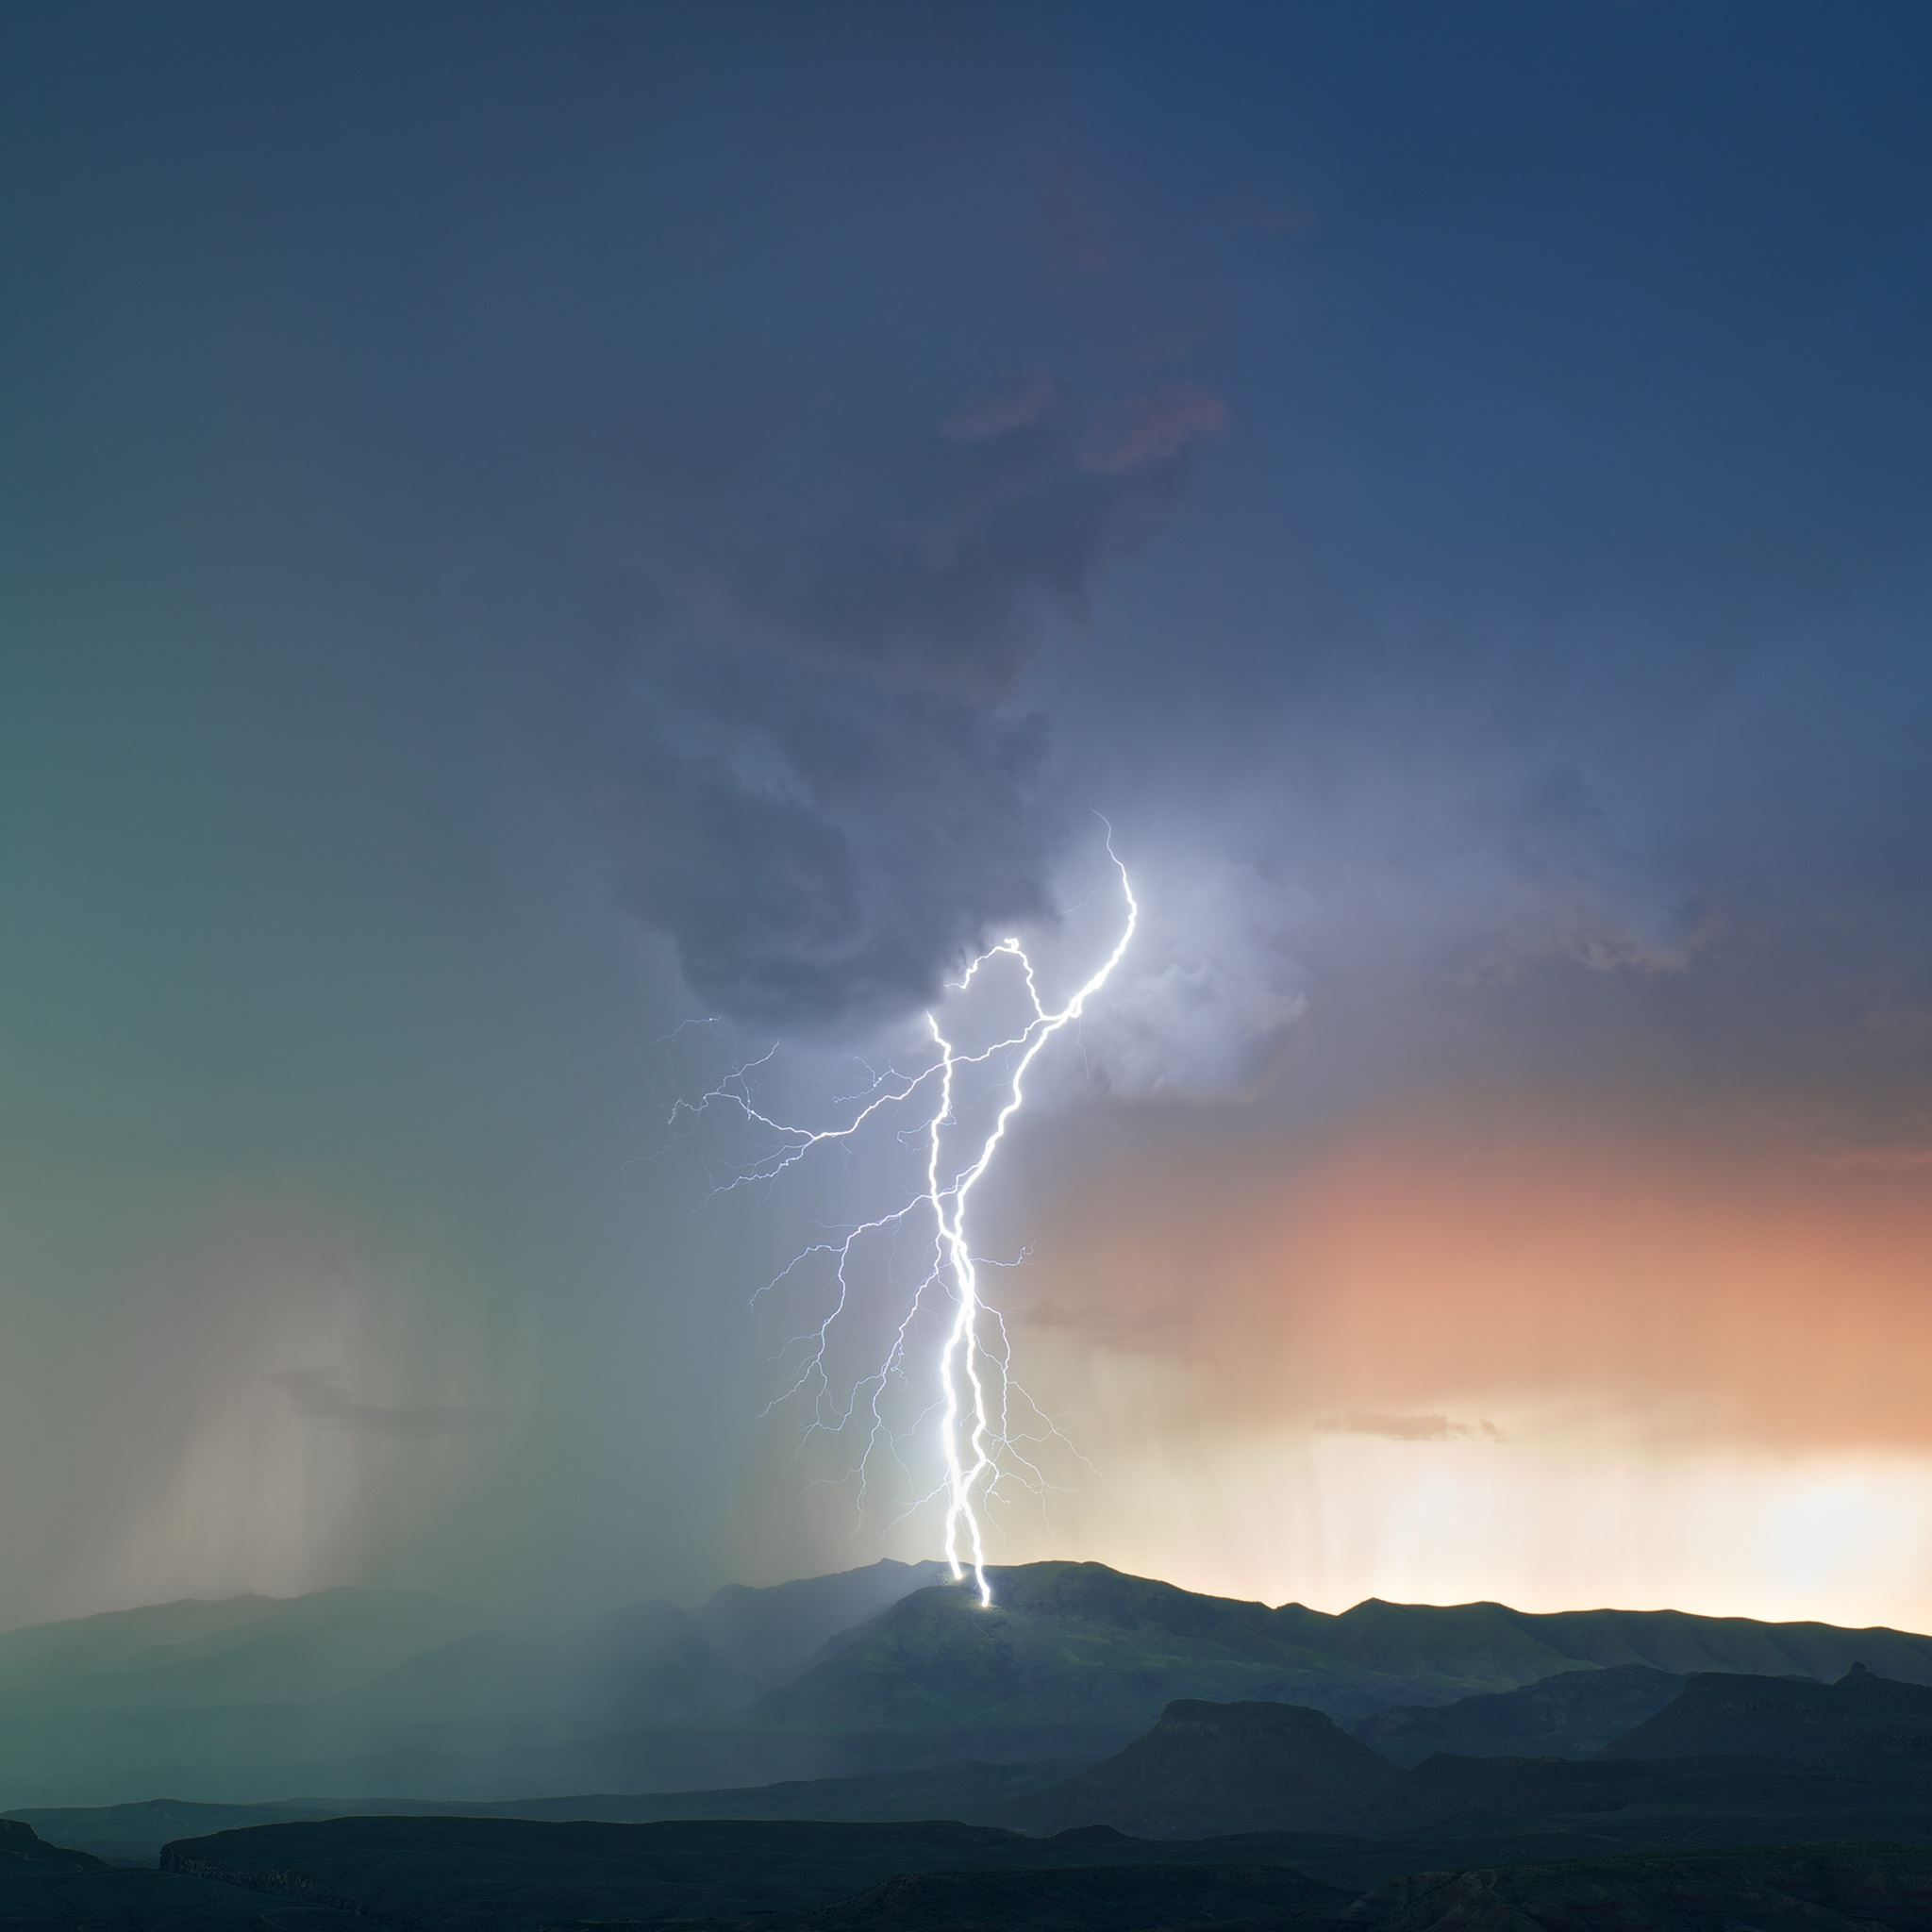 Mountain Struck By Lightning iPad Air wallpaper